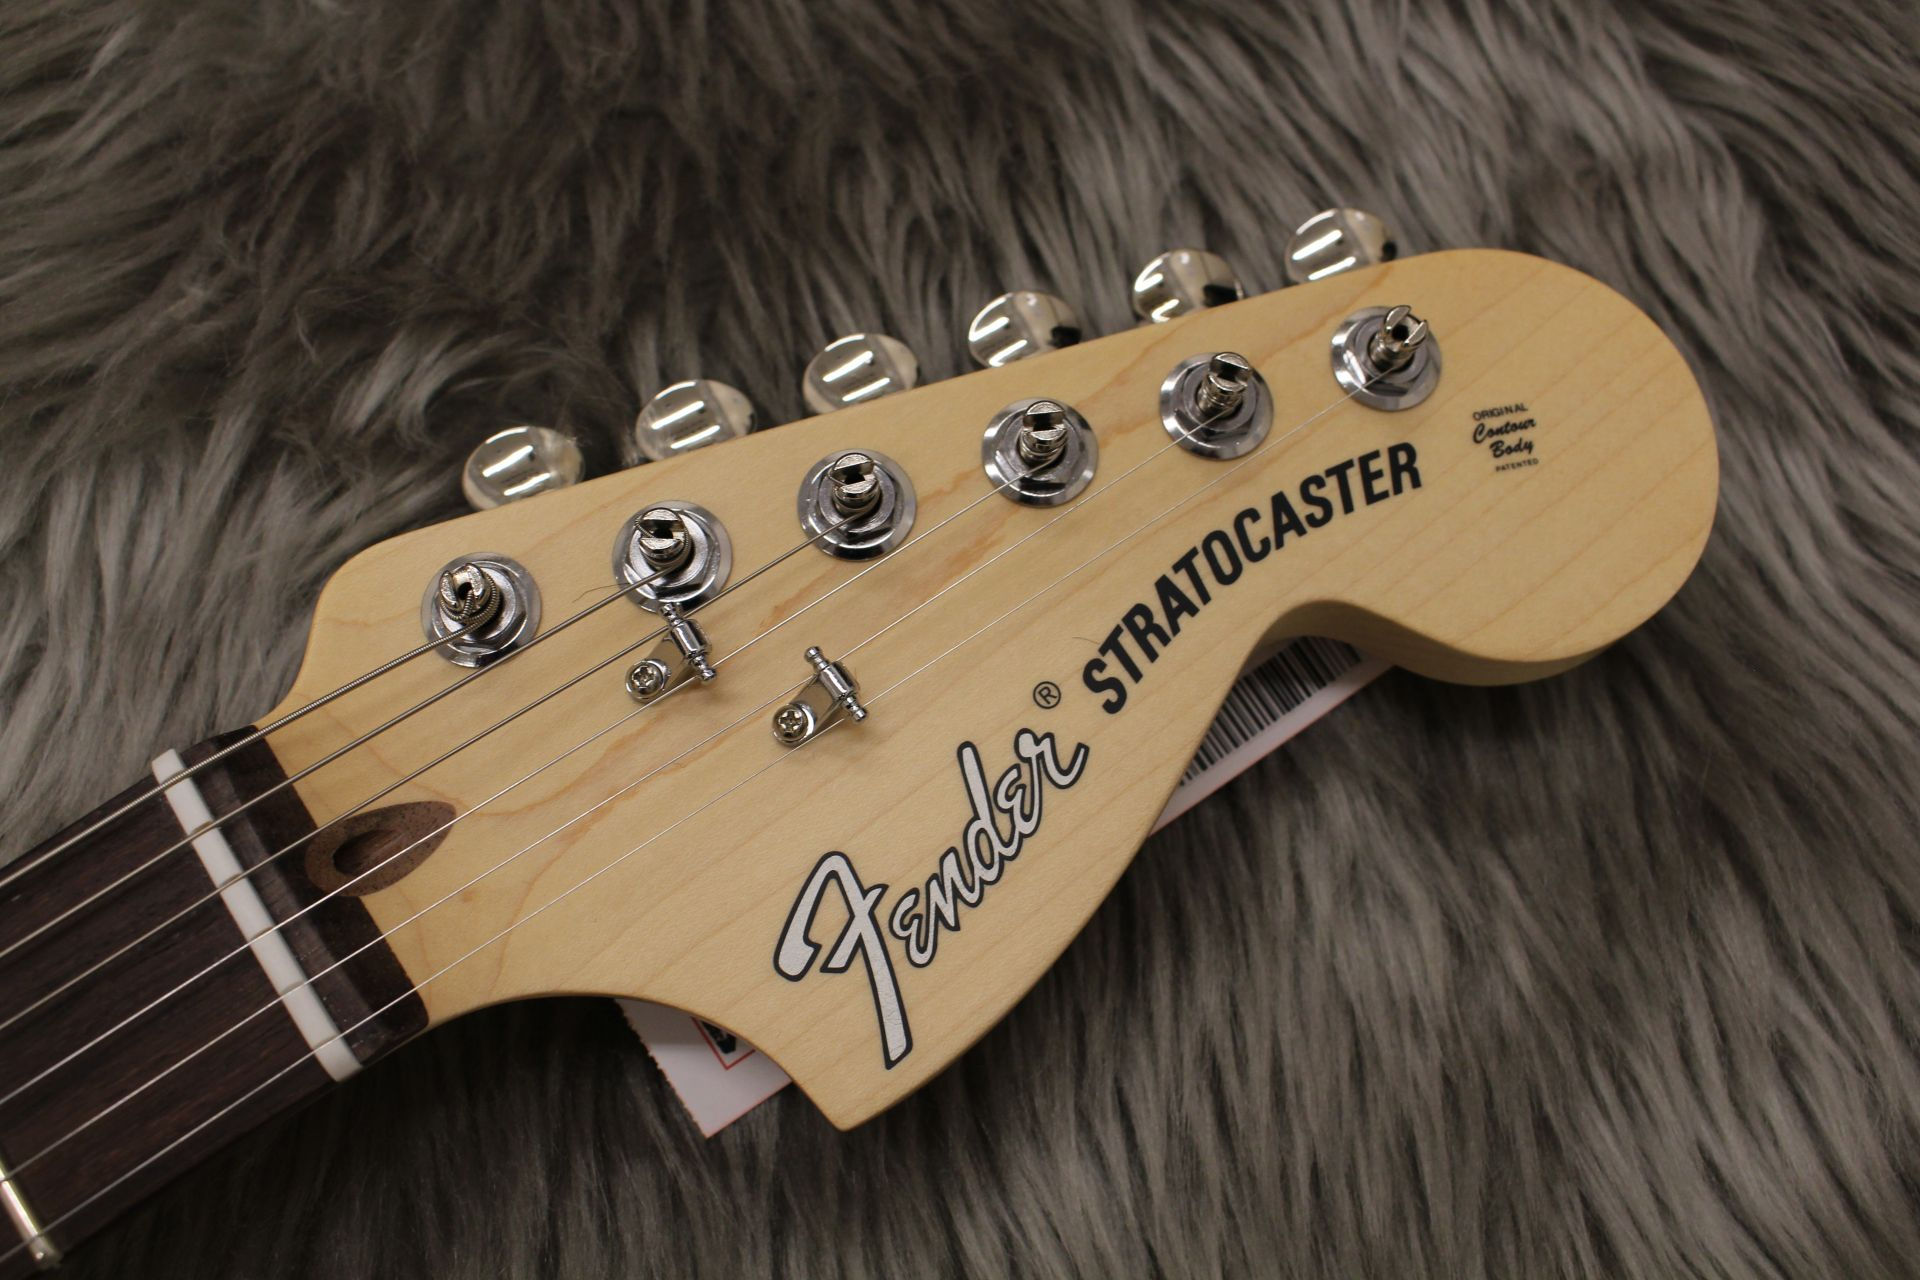 AMERICAN PERFORMER STRATOCASTERのヘッド画像